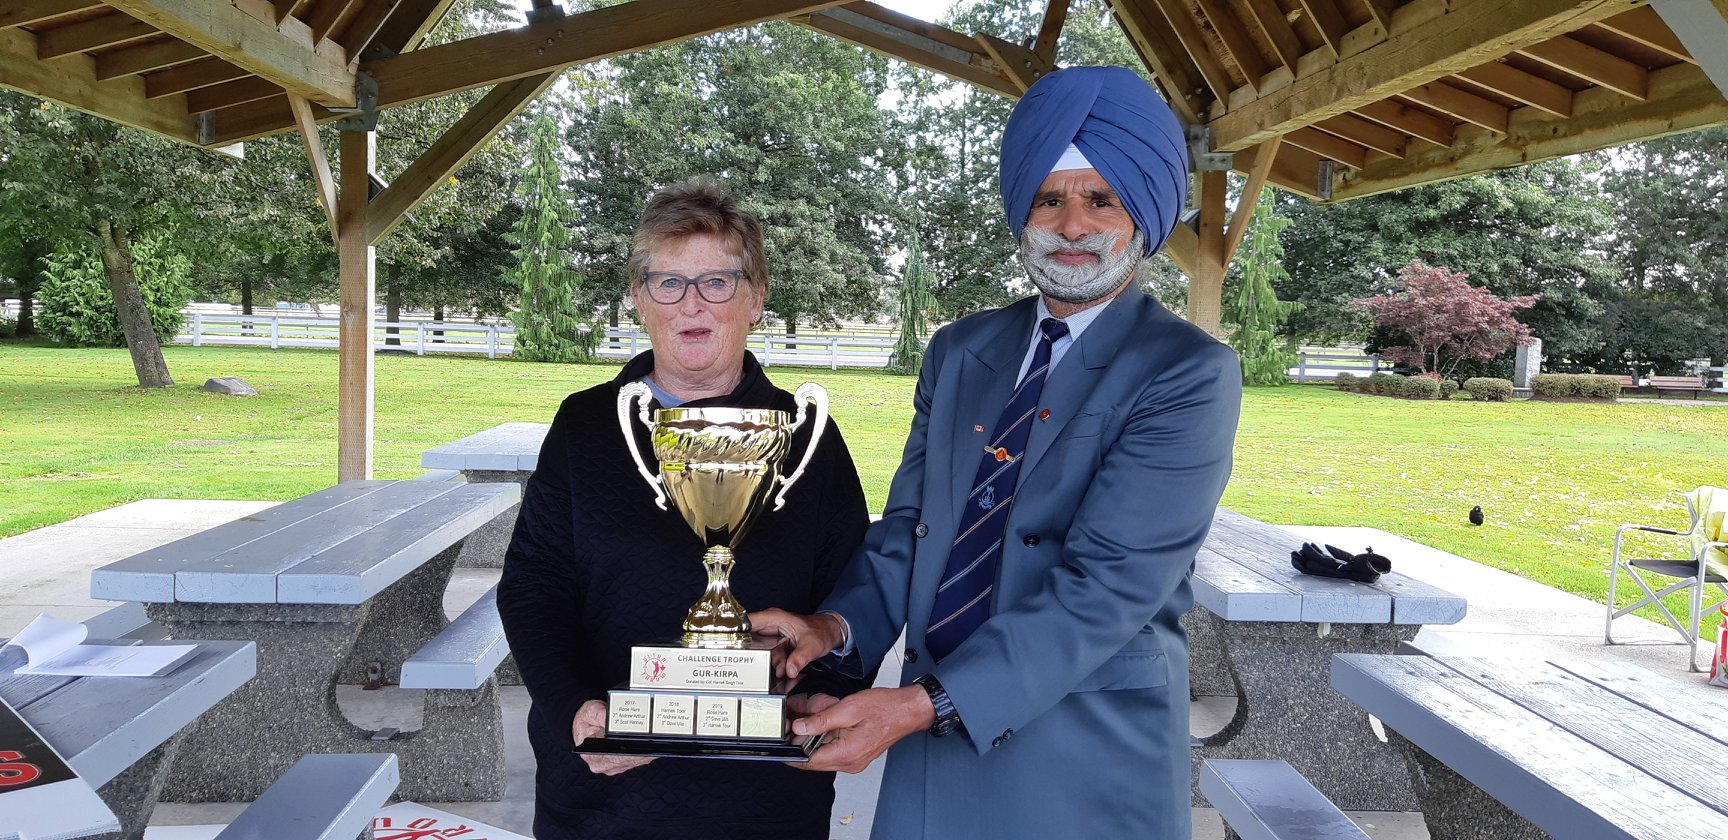 Rose Hare is presented the Challenge Trophy by Harnek Toor on Sept. 28 at McLeod Athletic Park, Surrey, BC.